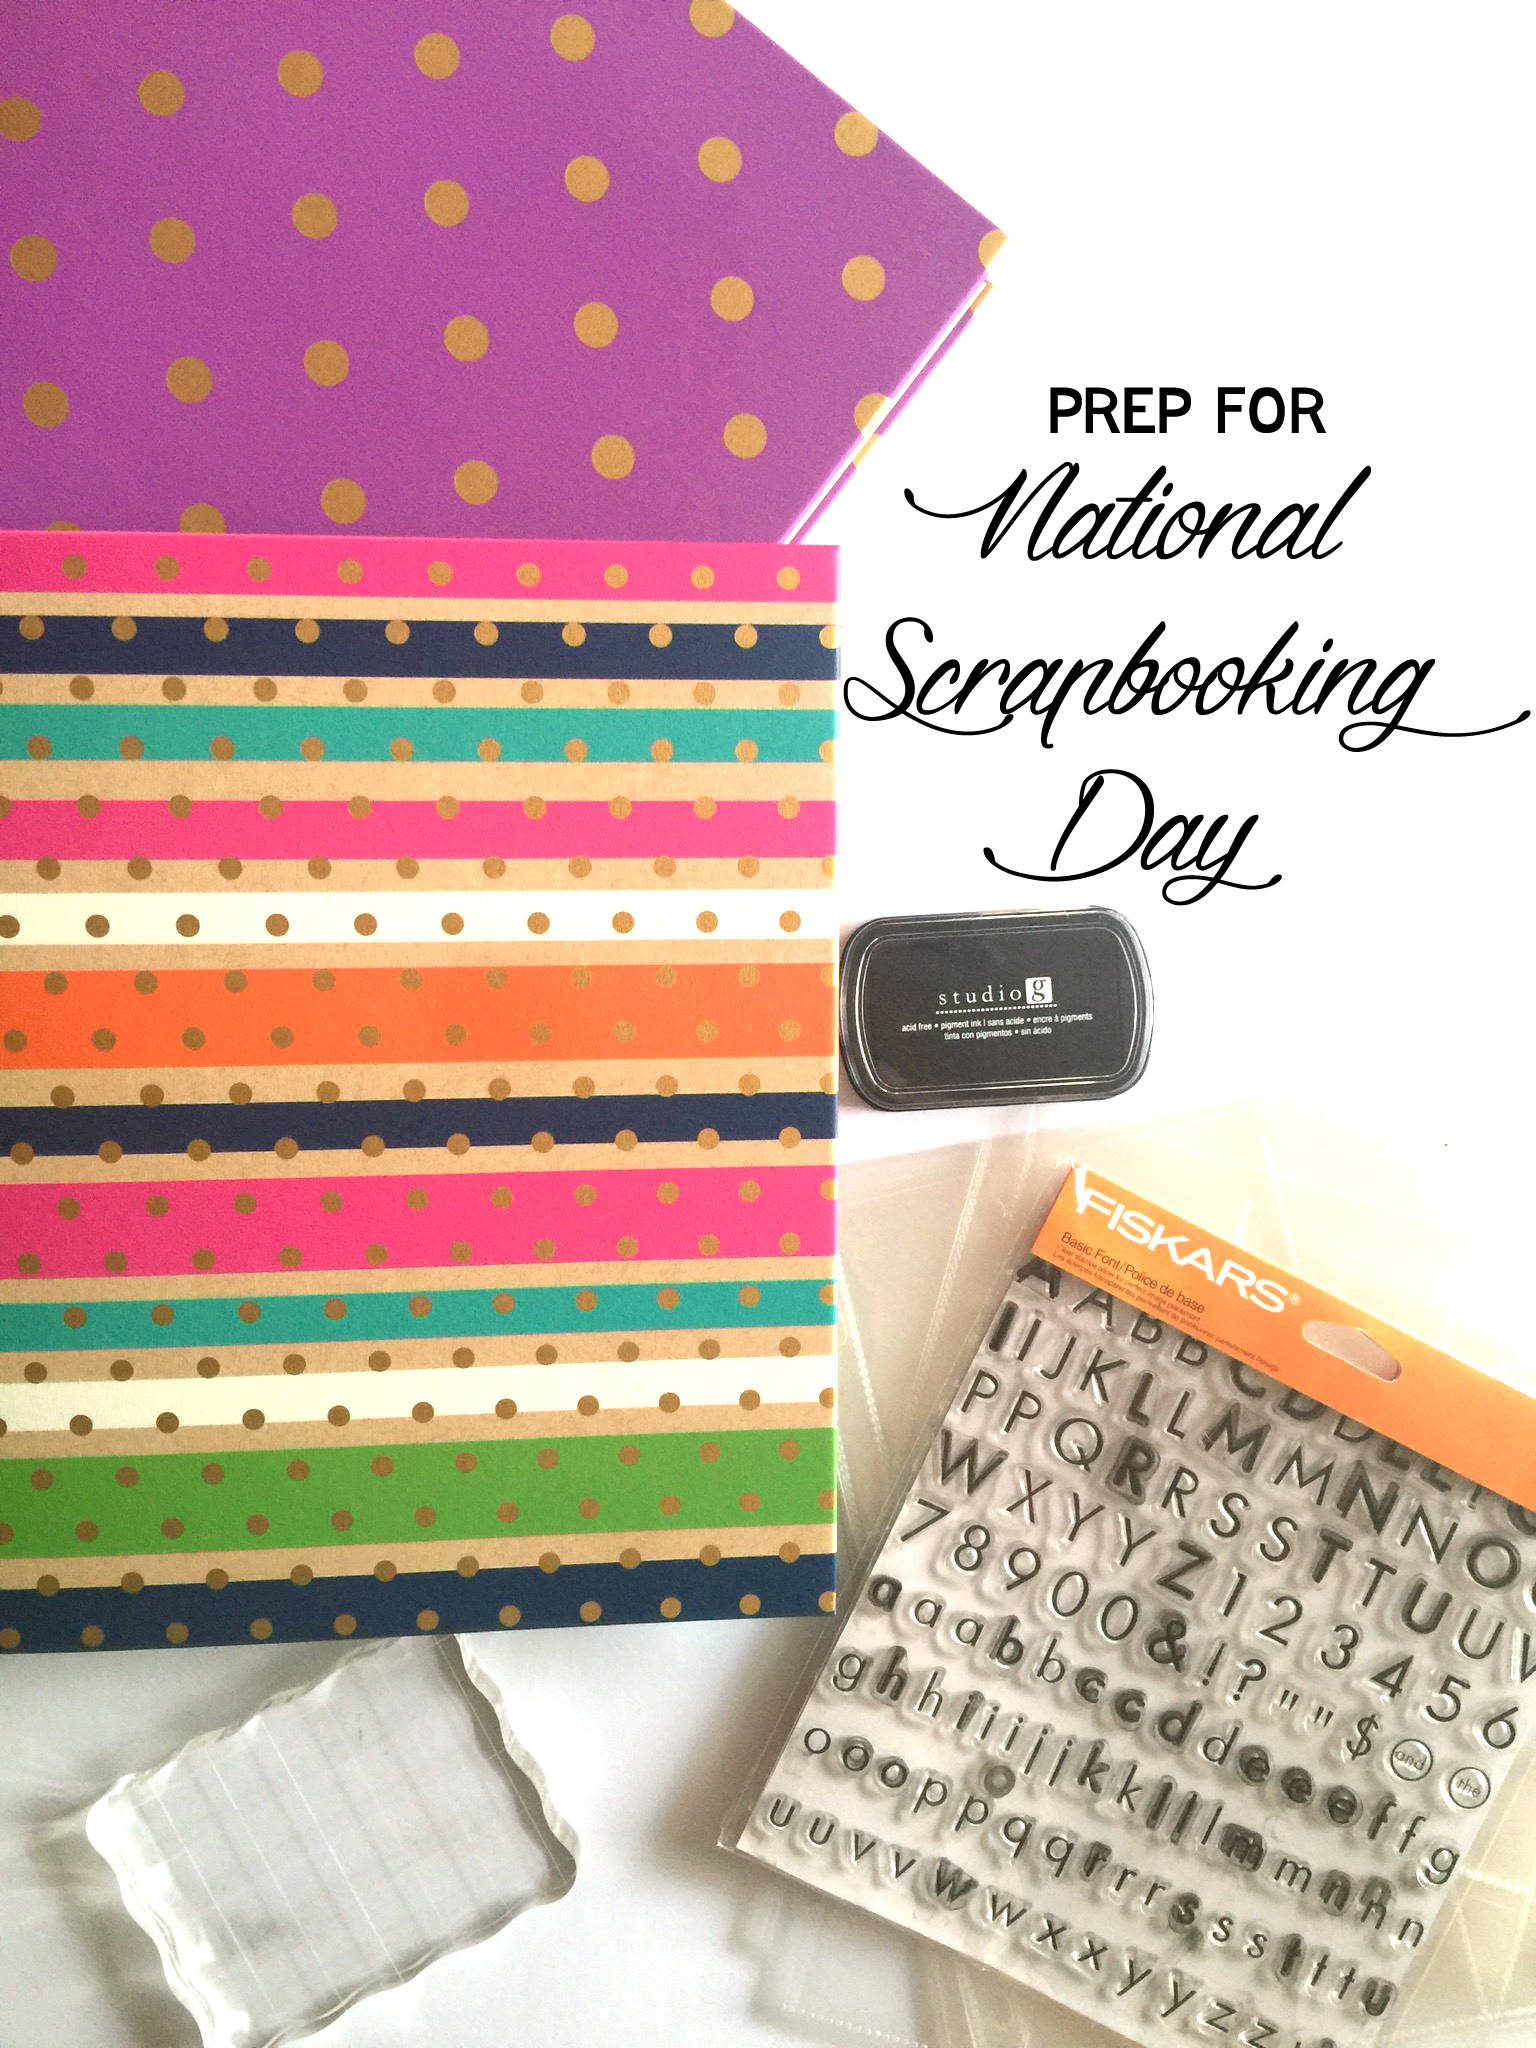 National Scrapbook Day is tomorrow, so here's a few perfect supplies for the holiday!